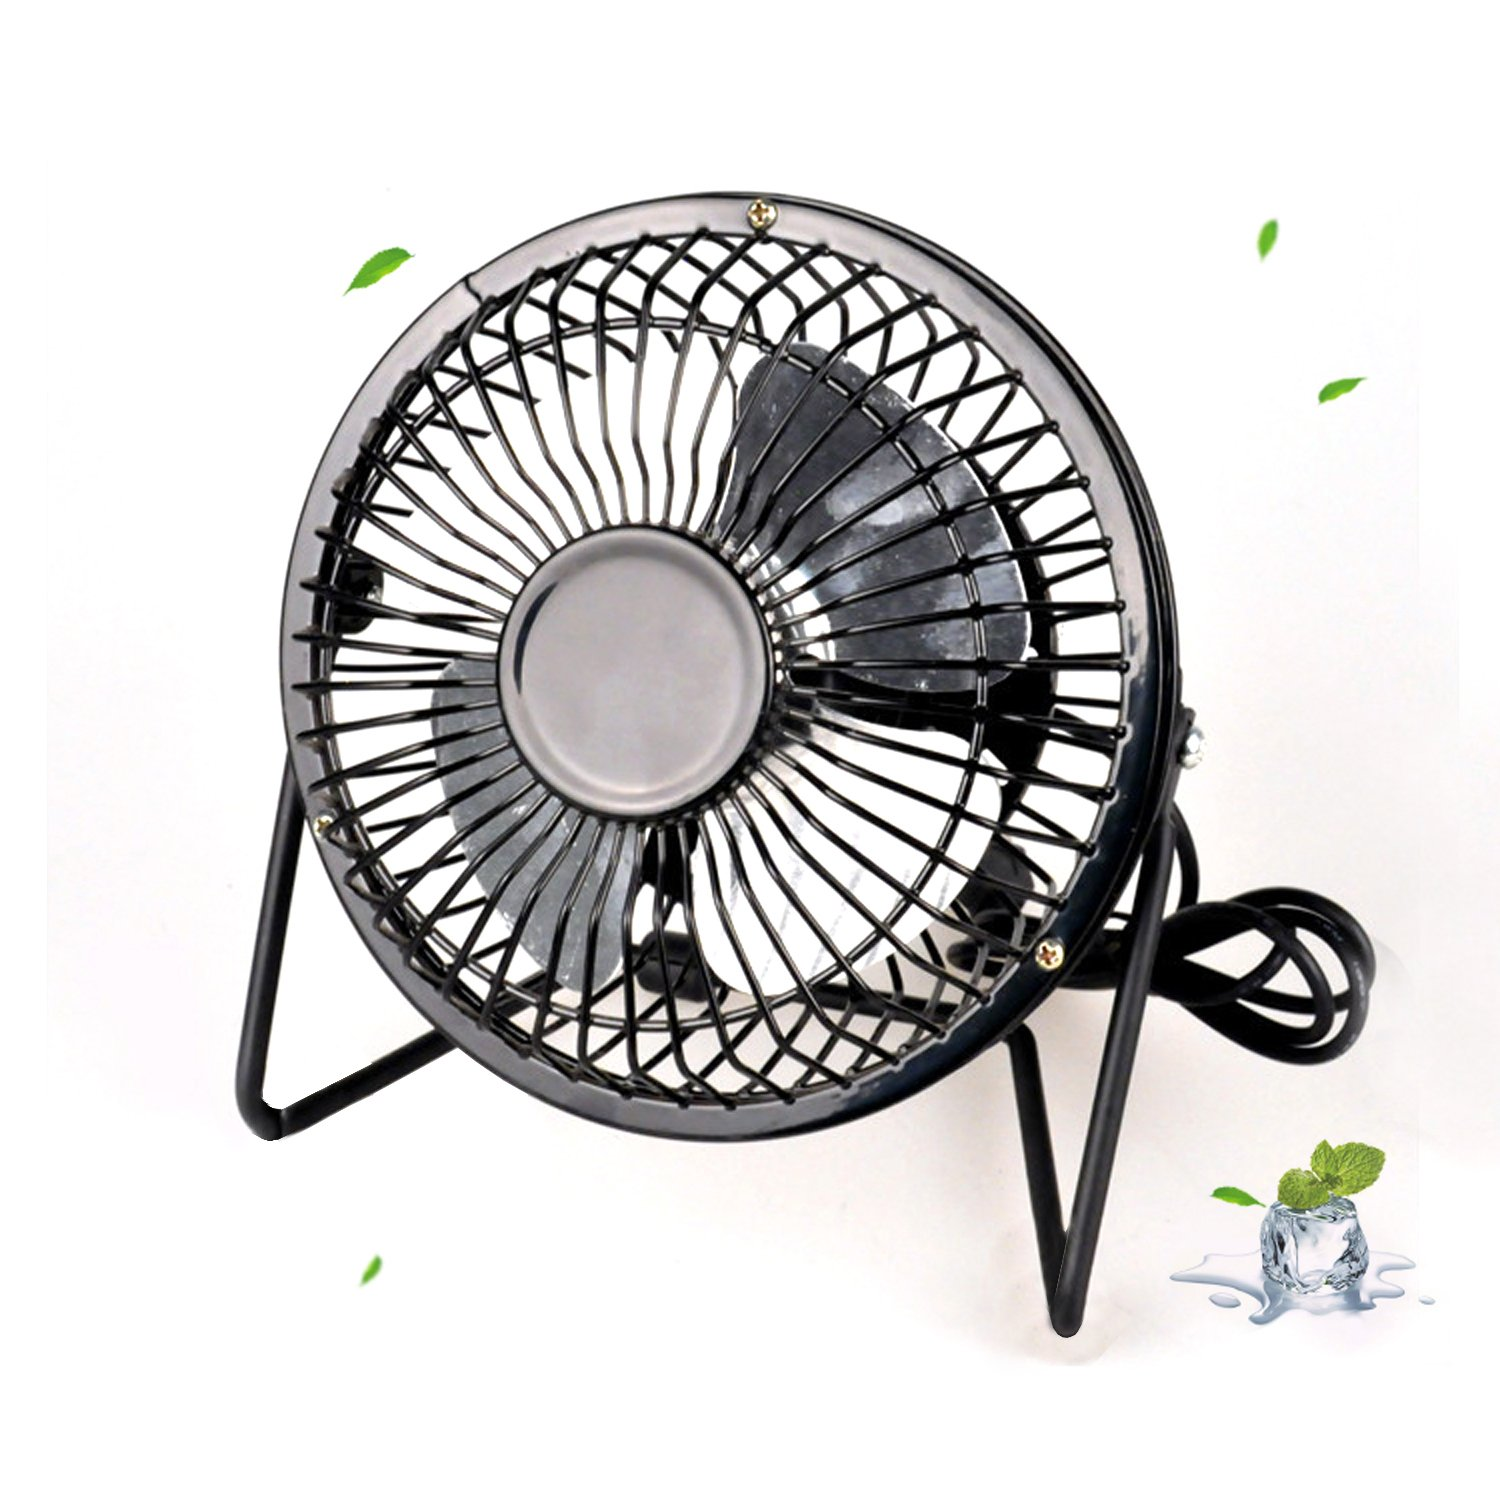 Brand New Mini Portable USB Metal Desk Fan, for Desktop PC/Laptop/DC/Netbook/Computer and MacBook- Powered Quiet Cooling The Best Kingdom